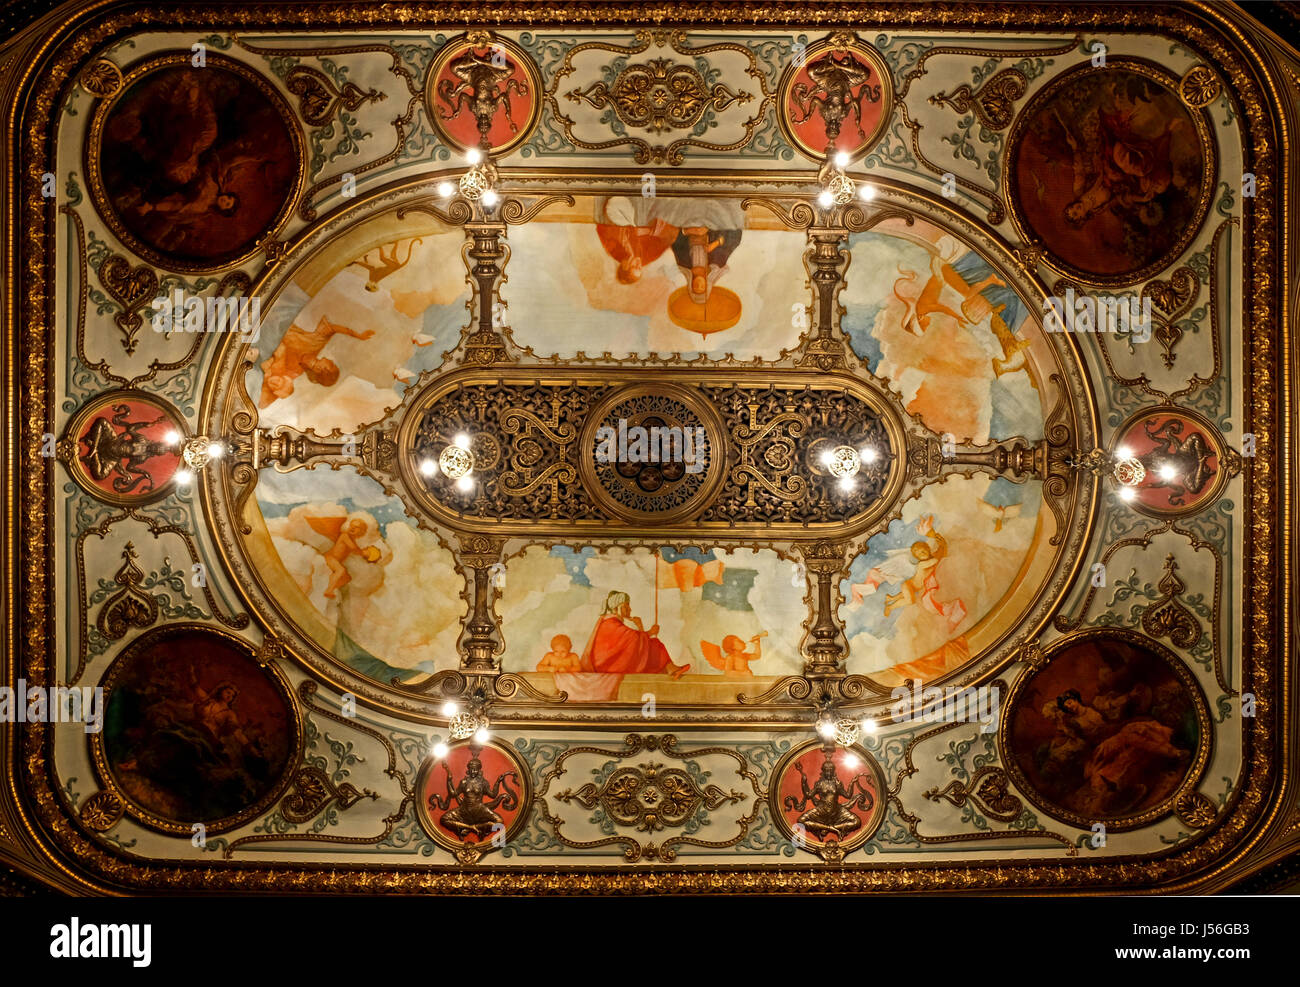 Ceiling of Belfast Grand Opera House, designed by Frank Matcham - Stock Image